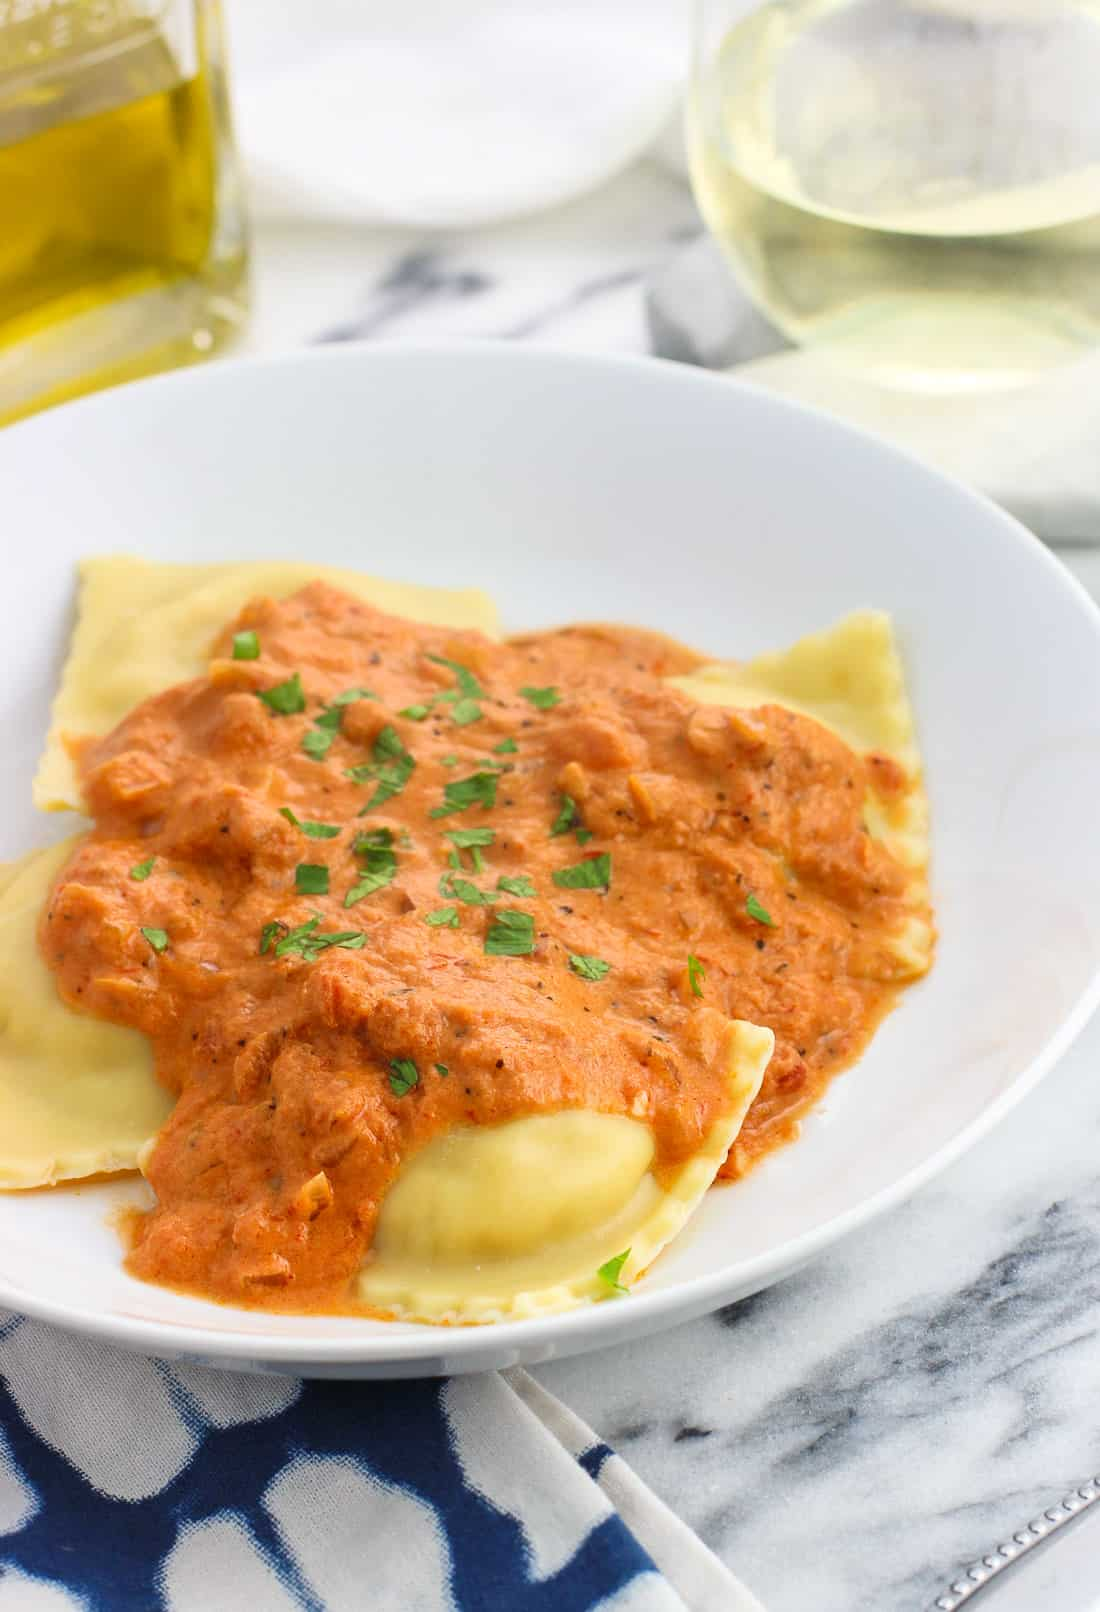 This recipe for lightened up vodka sauce is a healthier way to enjoy Italian comfort food. This easy homemade vodka sauce substitutes in fat-free half-and-half for a lower fat but creamy sauce without any worries of it separating.